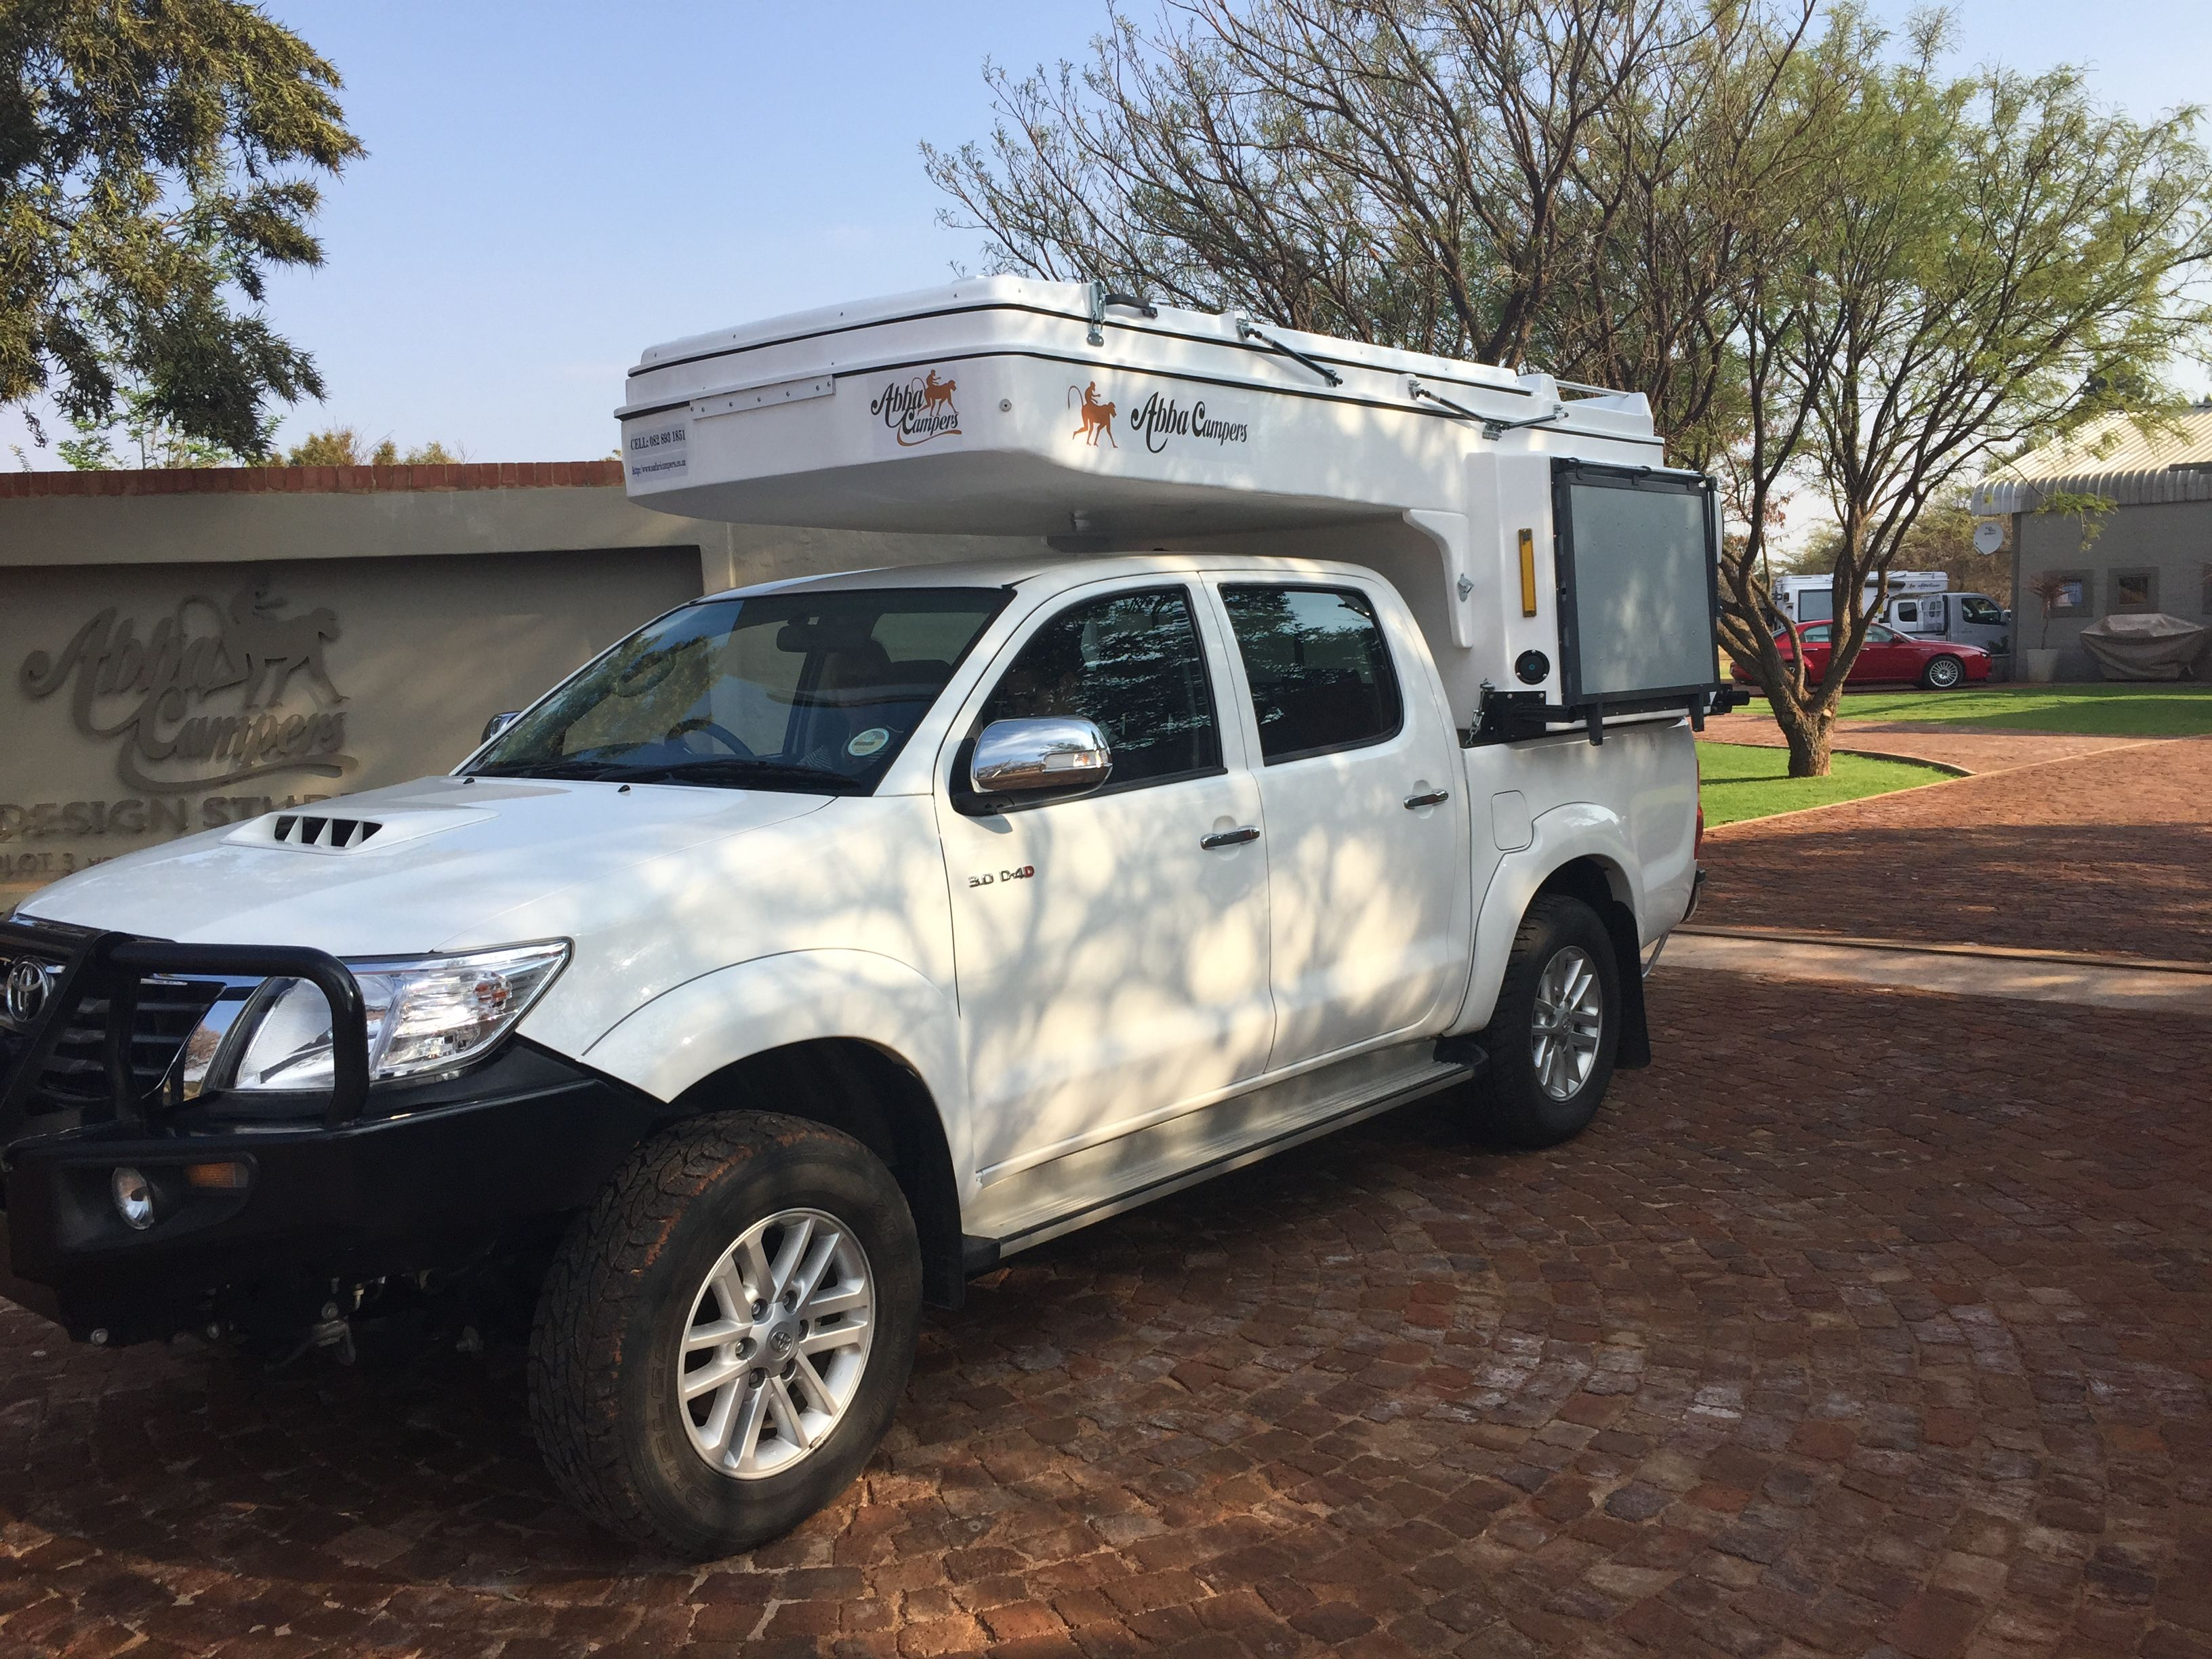 Abba camper compact unit on hilux double cab